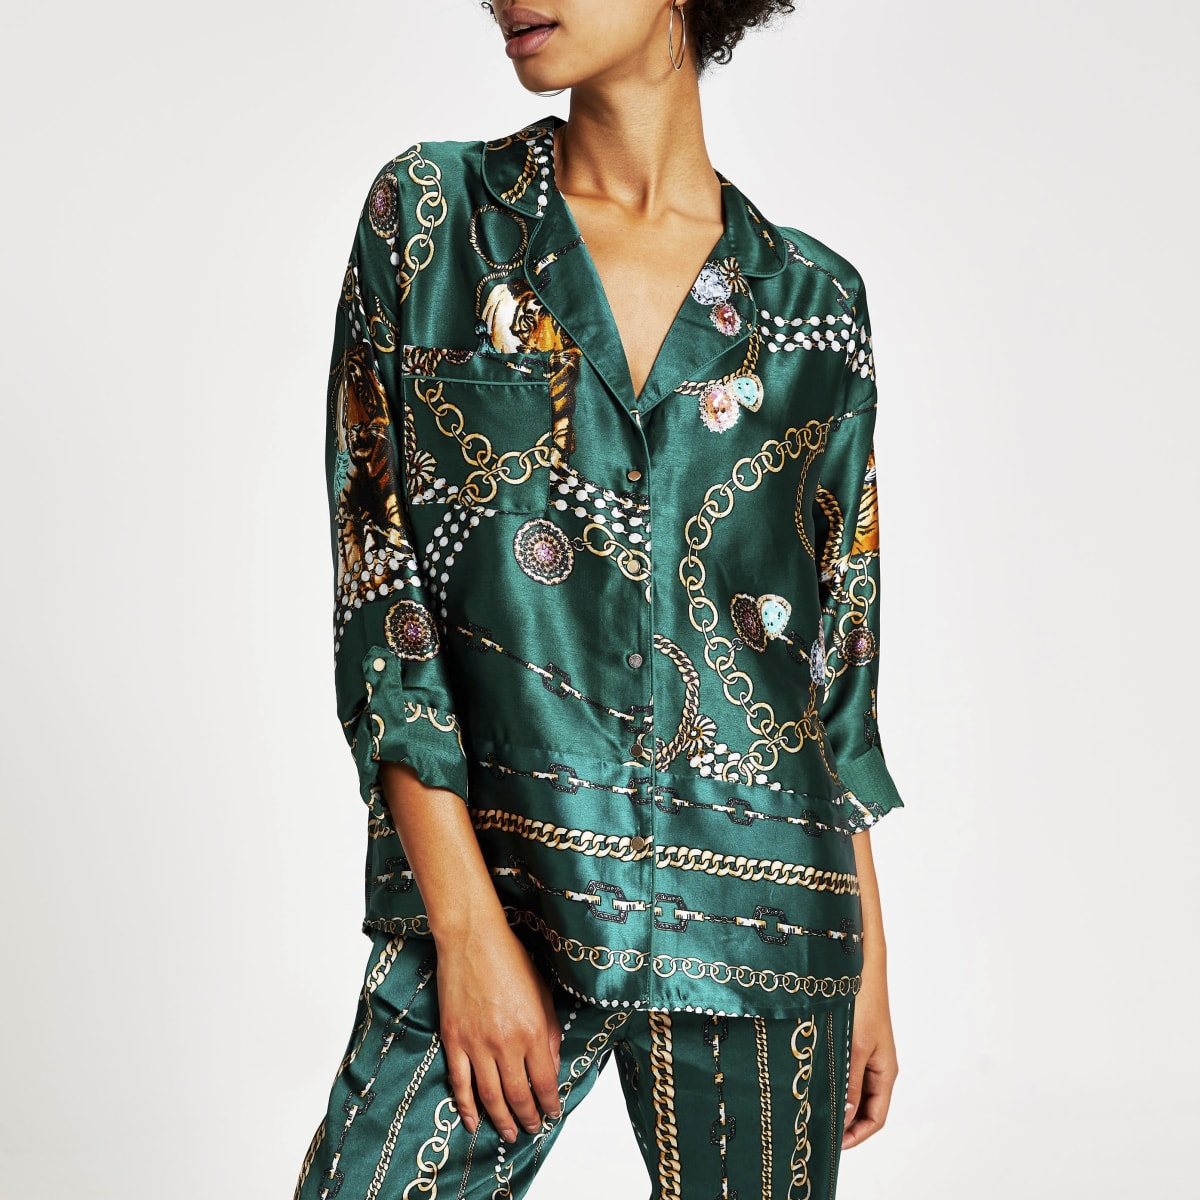 Green printed satin family pyjama shirt